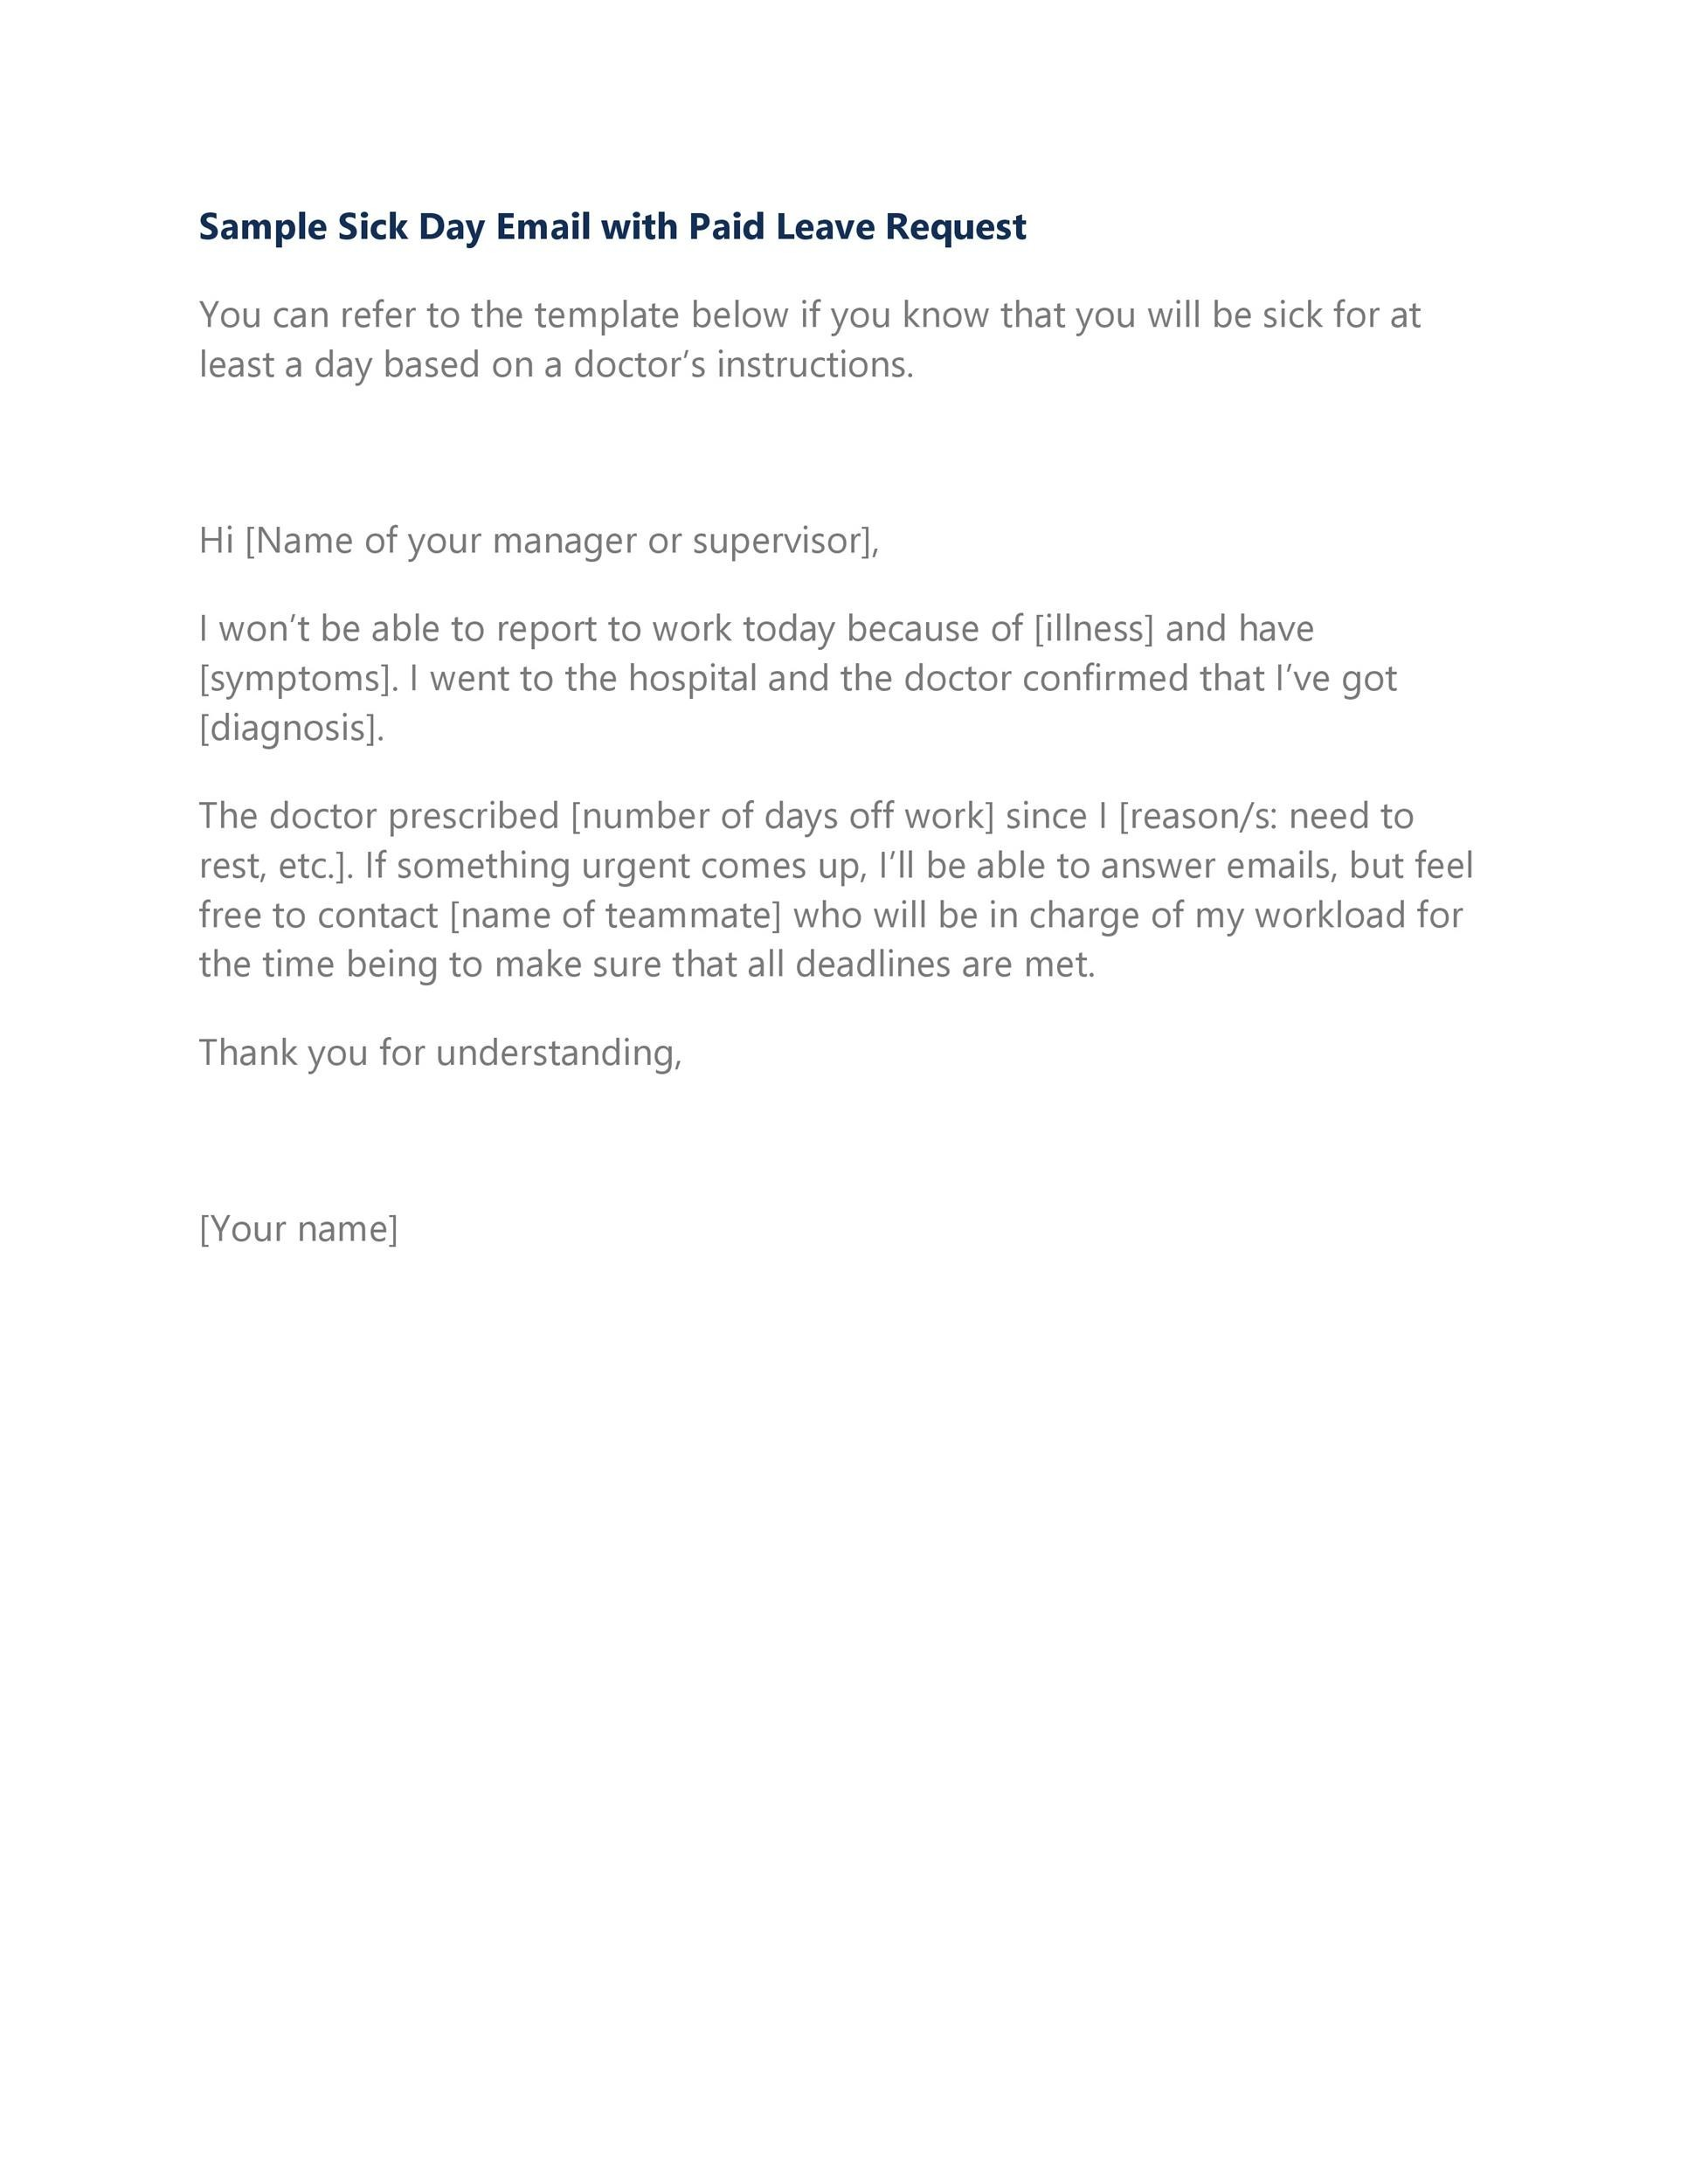 Free sick leave email 47